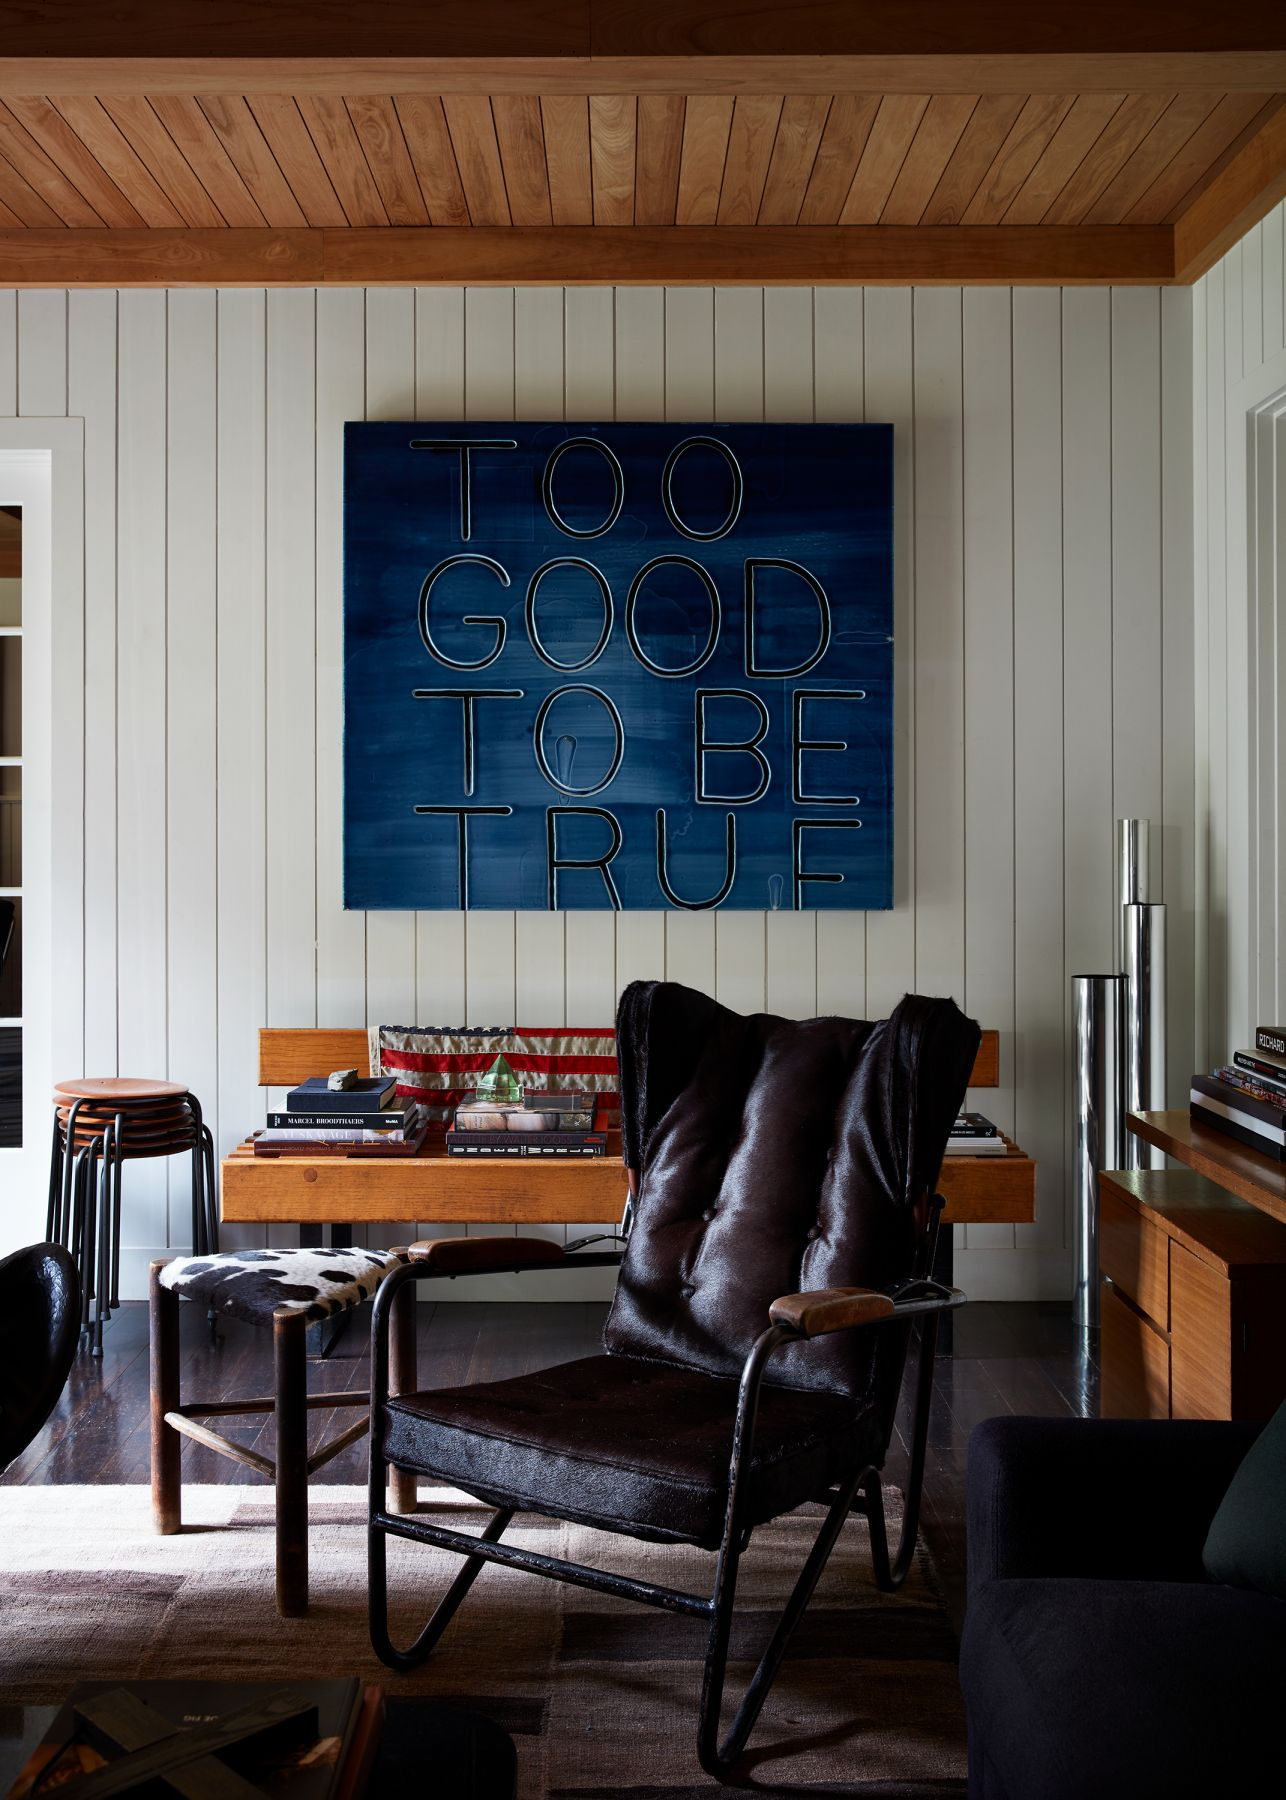 Perfecto chair by Pierre Guariche in Robert's Stilin apartment, Image by Stephen Kent Johnson